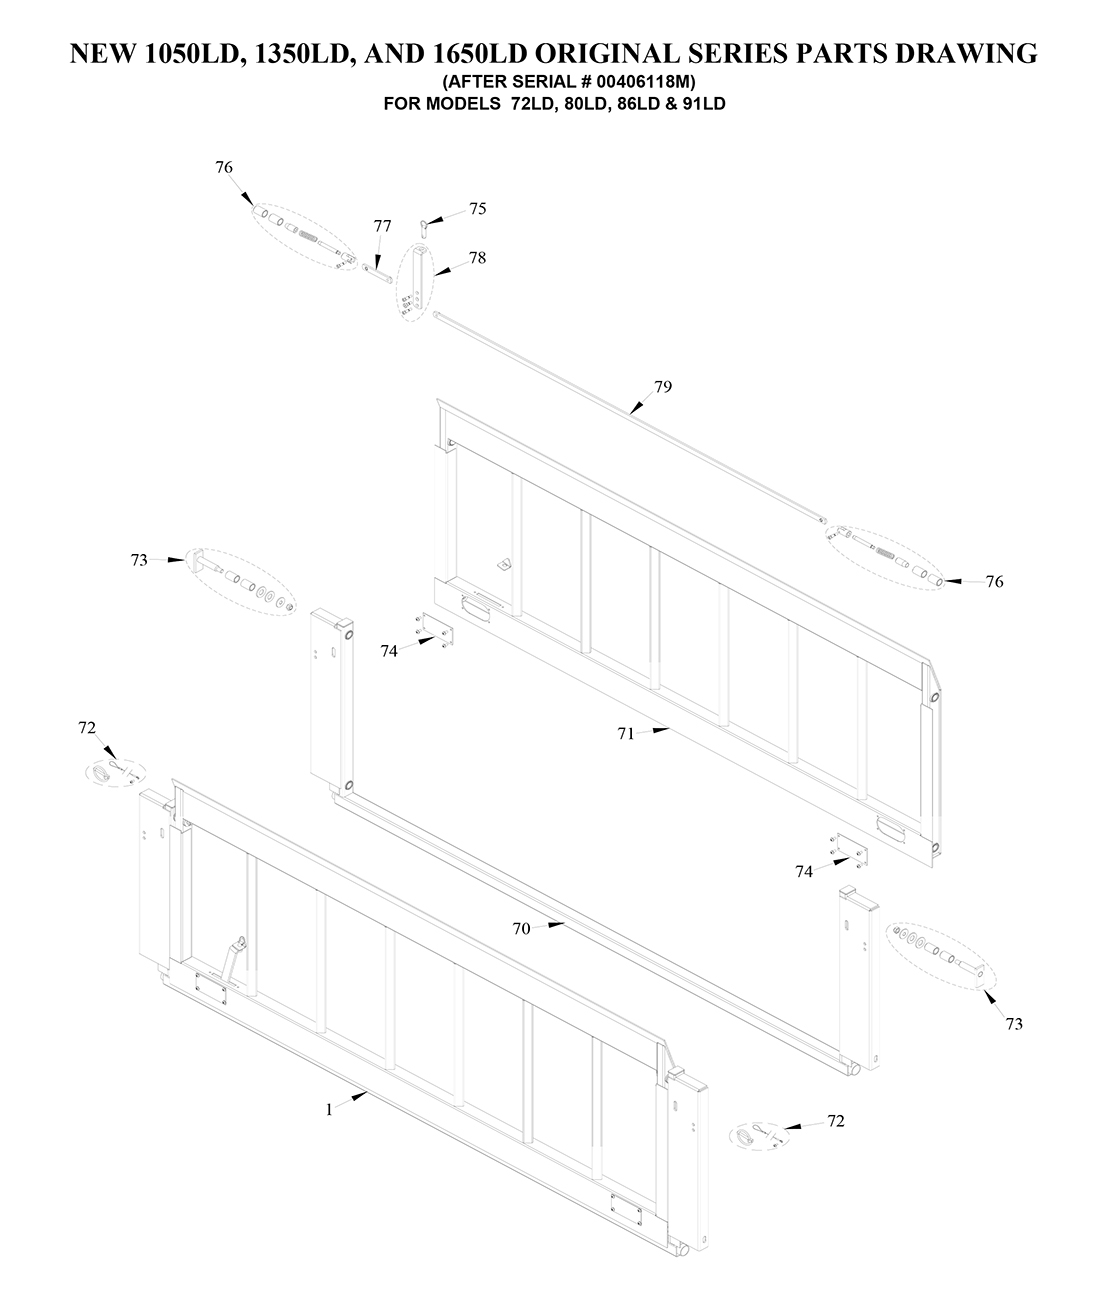 Tommy Gate Original Series Lift-And-Dump Diagram [Flatbed, Stake & Van]